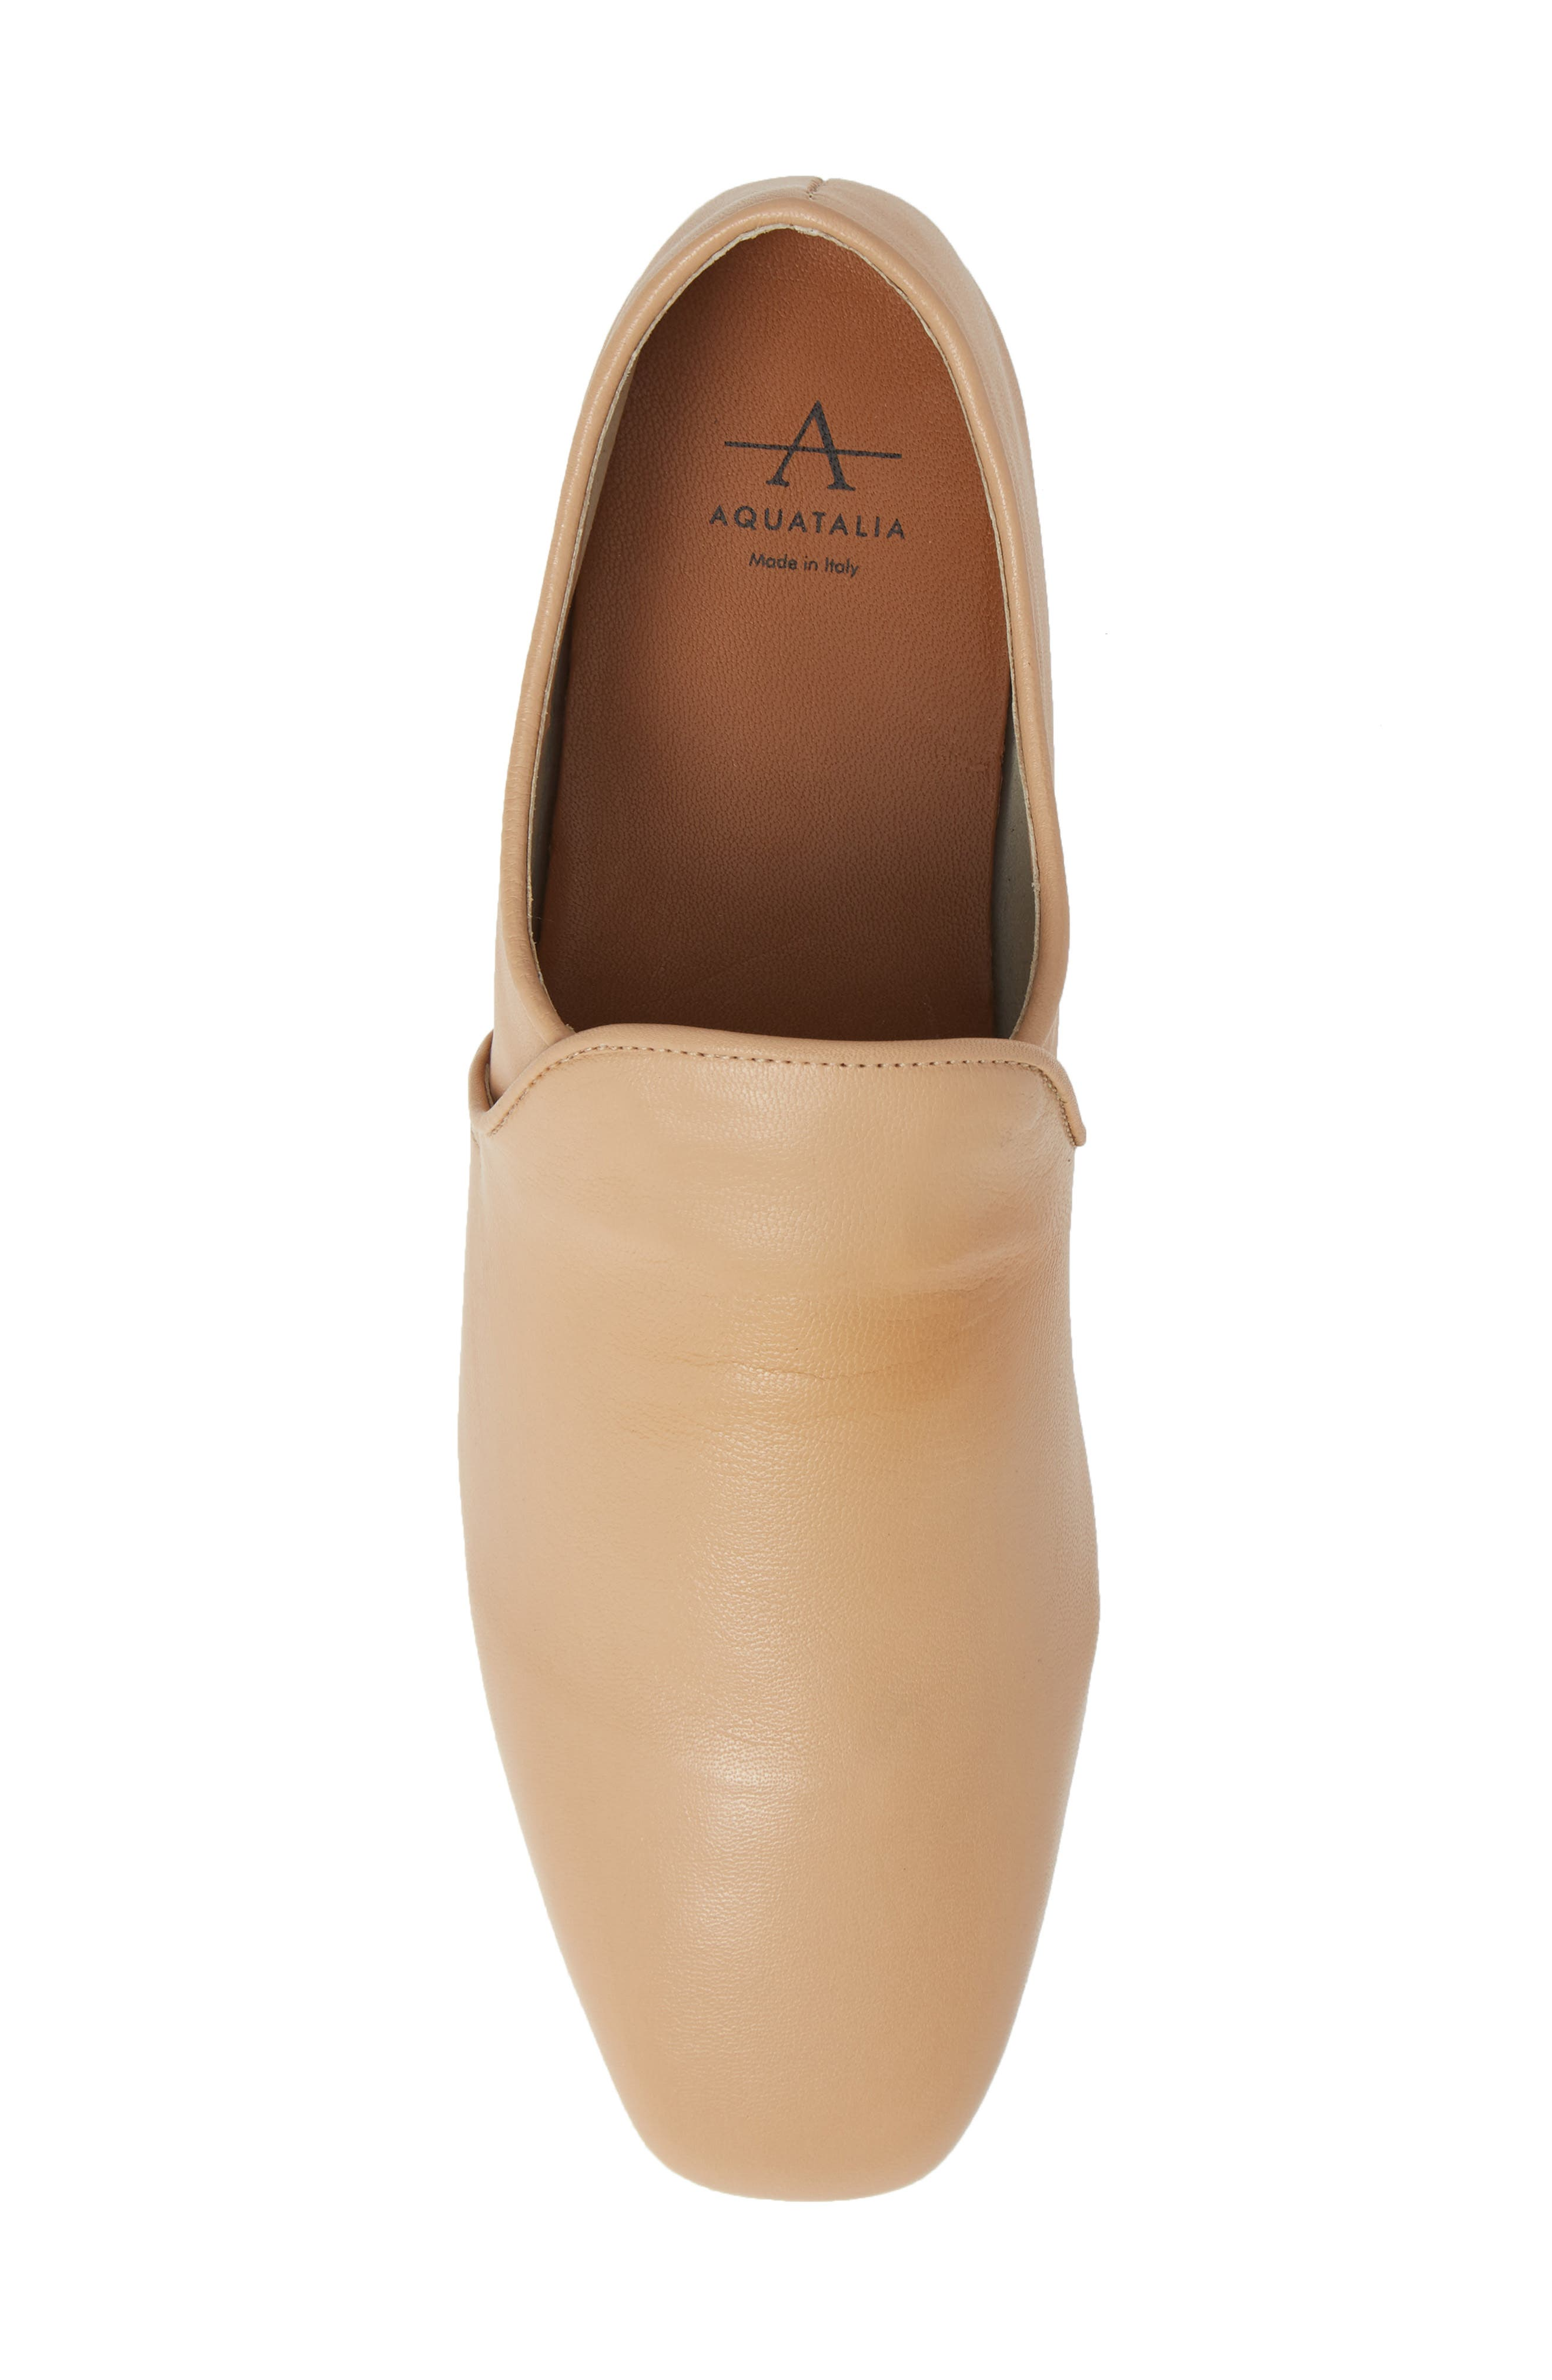 Revy Weatherporoof Loafer,                             Alternate thumbnail 5, color,                             NUDE NAPPA